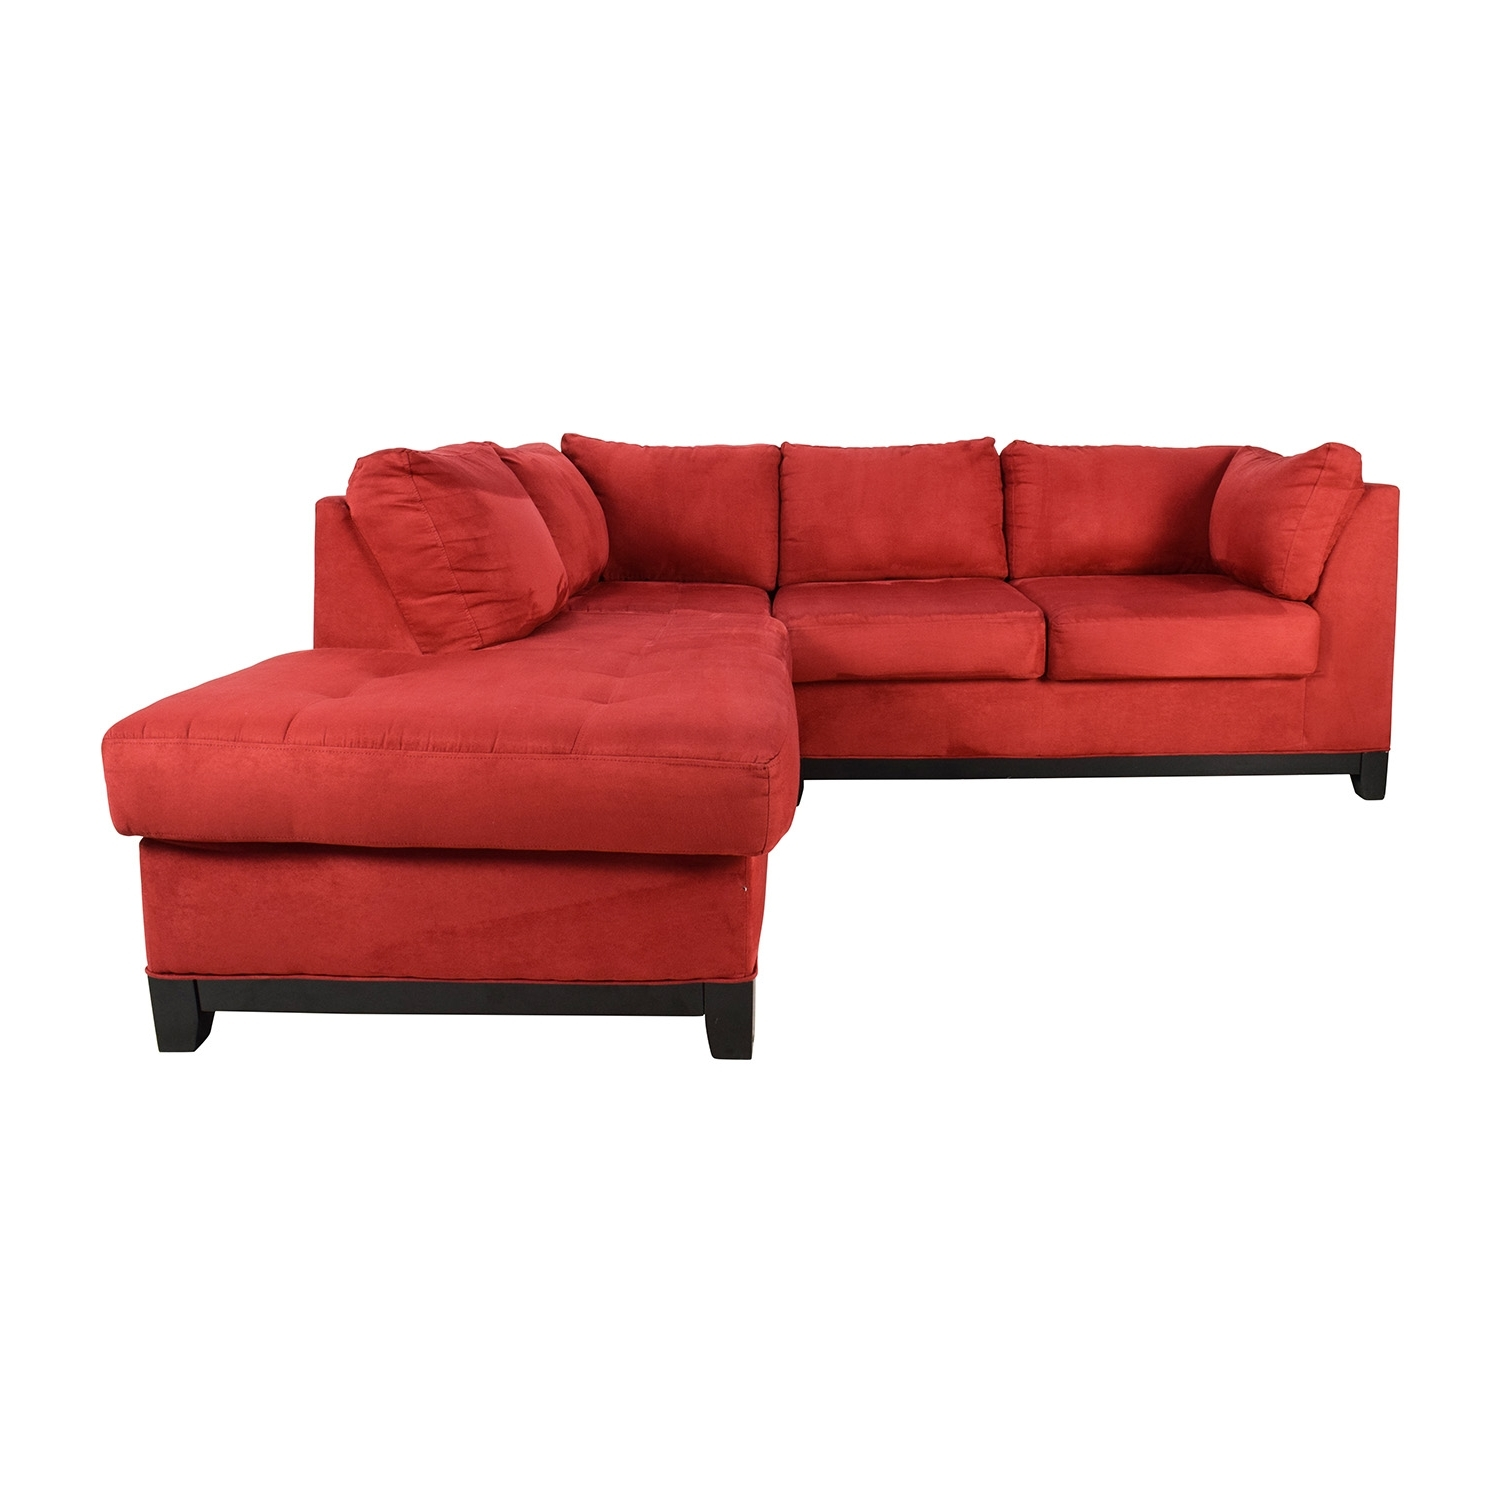 [%67% Off – Raymour And Flanigan Raymour & Flanigan Zella Red Intended For Fashionable Red Sectional Sofas|Red Sectional Sofas For Well Known 67% Off – Raymour And Flanigan Raymour & Flanigan Zella Red|Most Recent Red Sectional Sofas Regarding 67% Off – Raymour And Flanigan Raymour & Flanigan Zella Red|Newest 67% Off – Raymour And Flanigan Raymour & Flanigan Zella Red Throughout Red Sectional Sofas%] (View 1 of 20)